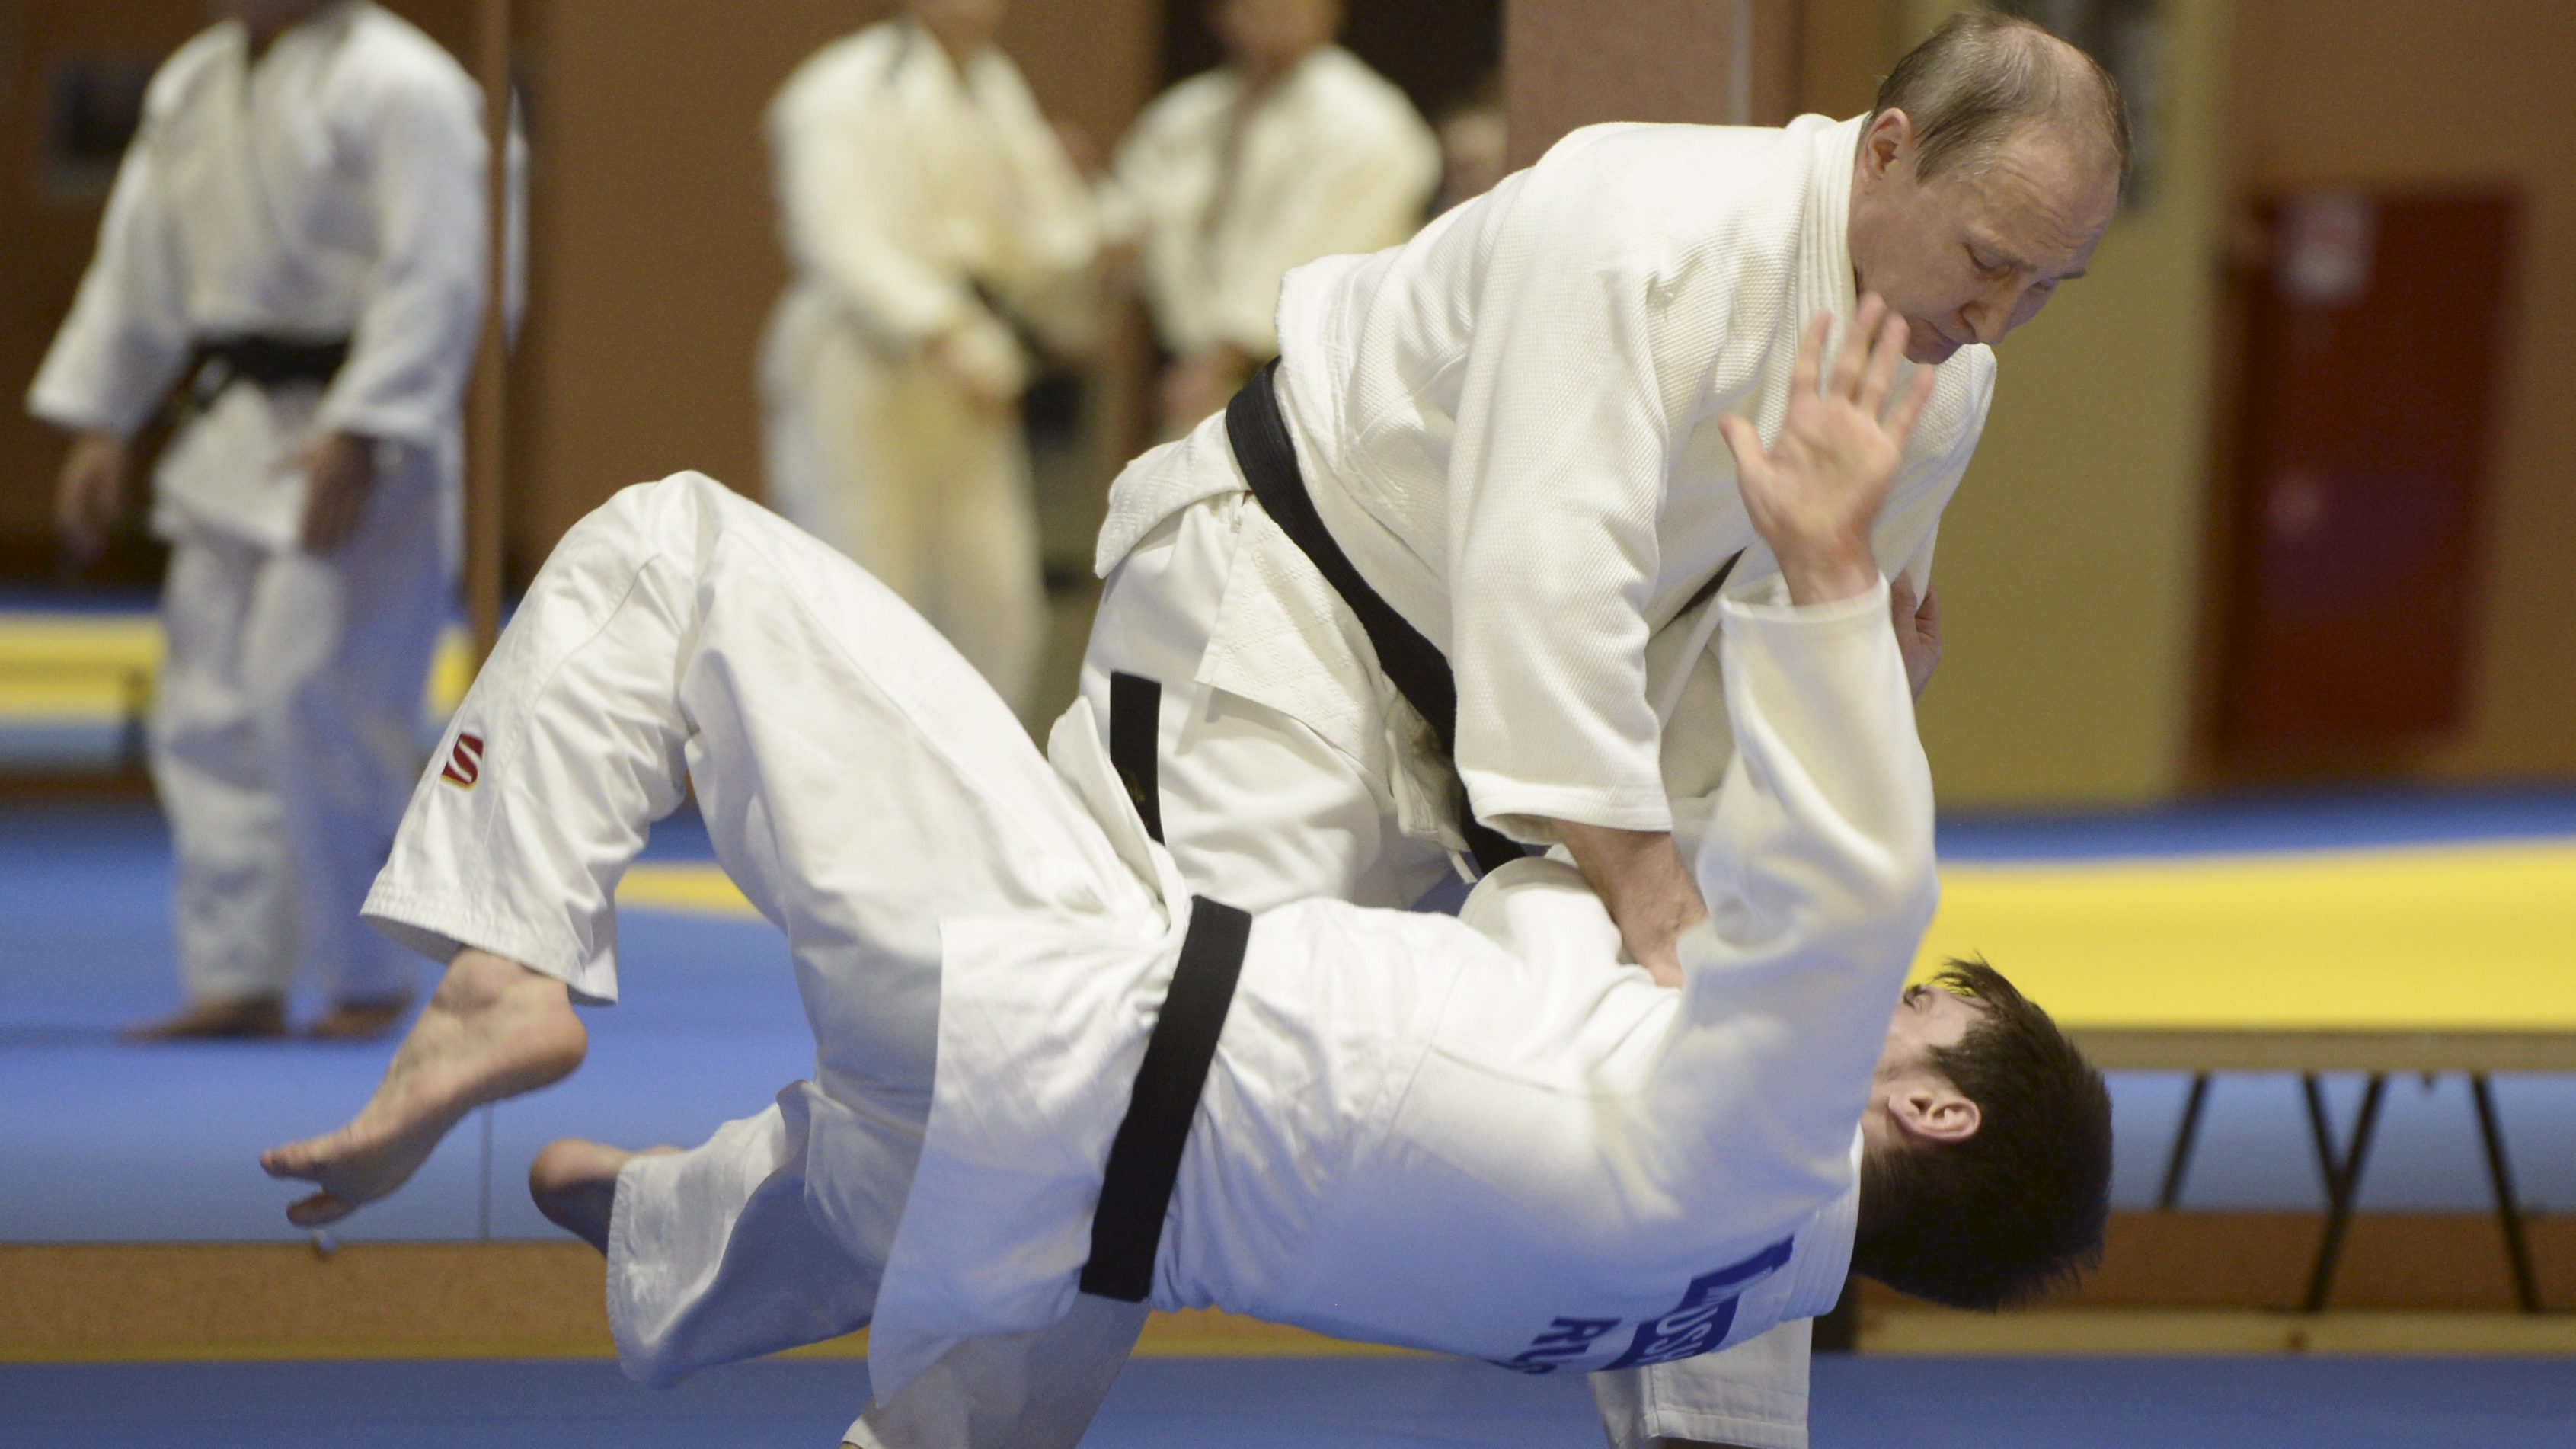 Putin works out seven days a week with swimming, gym, judo and hockey